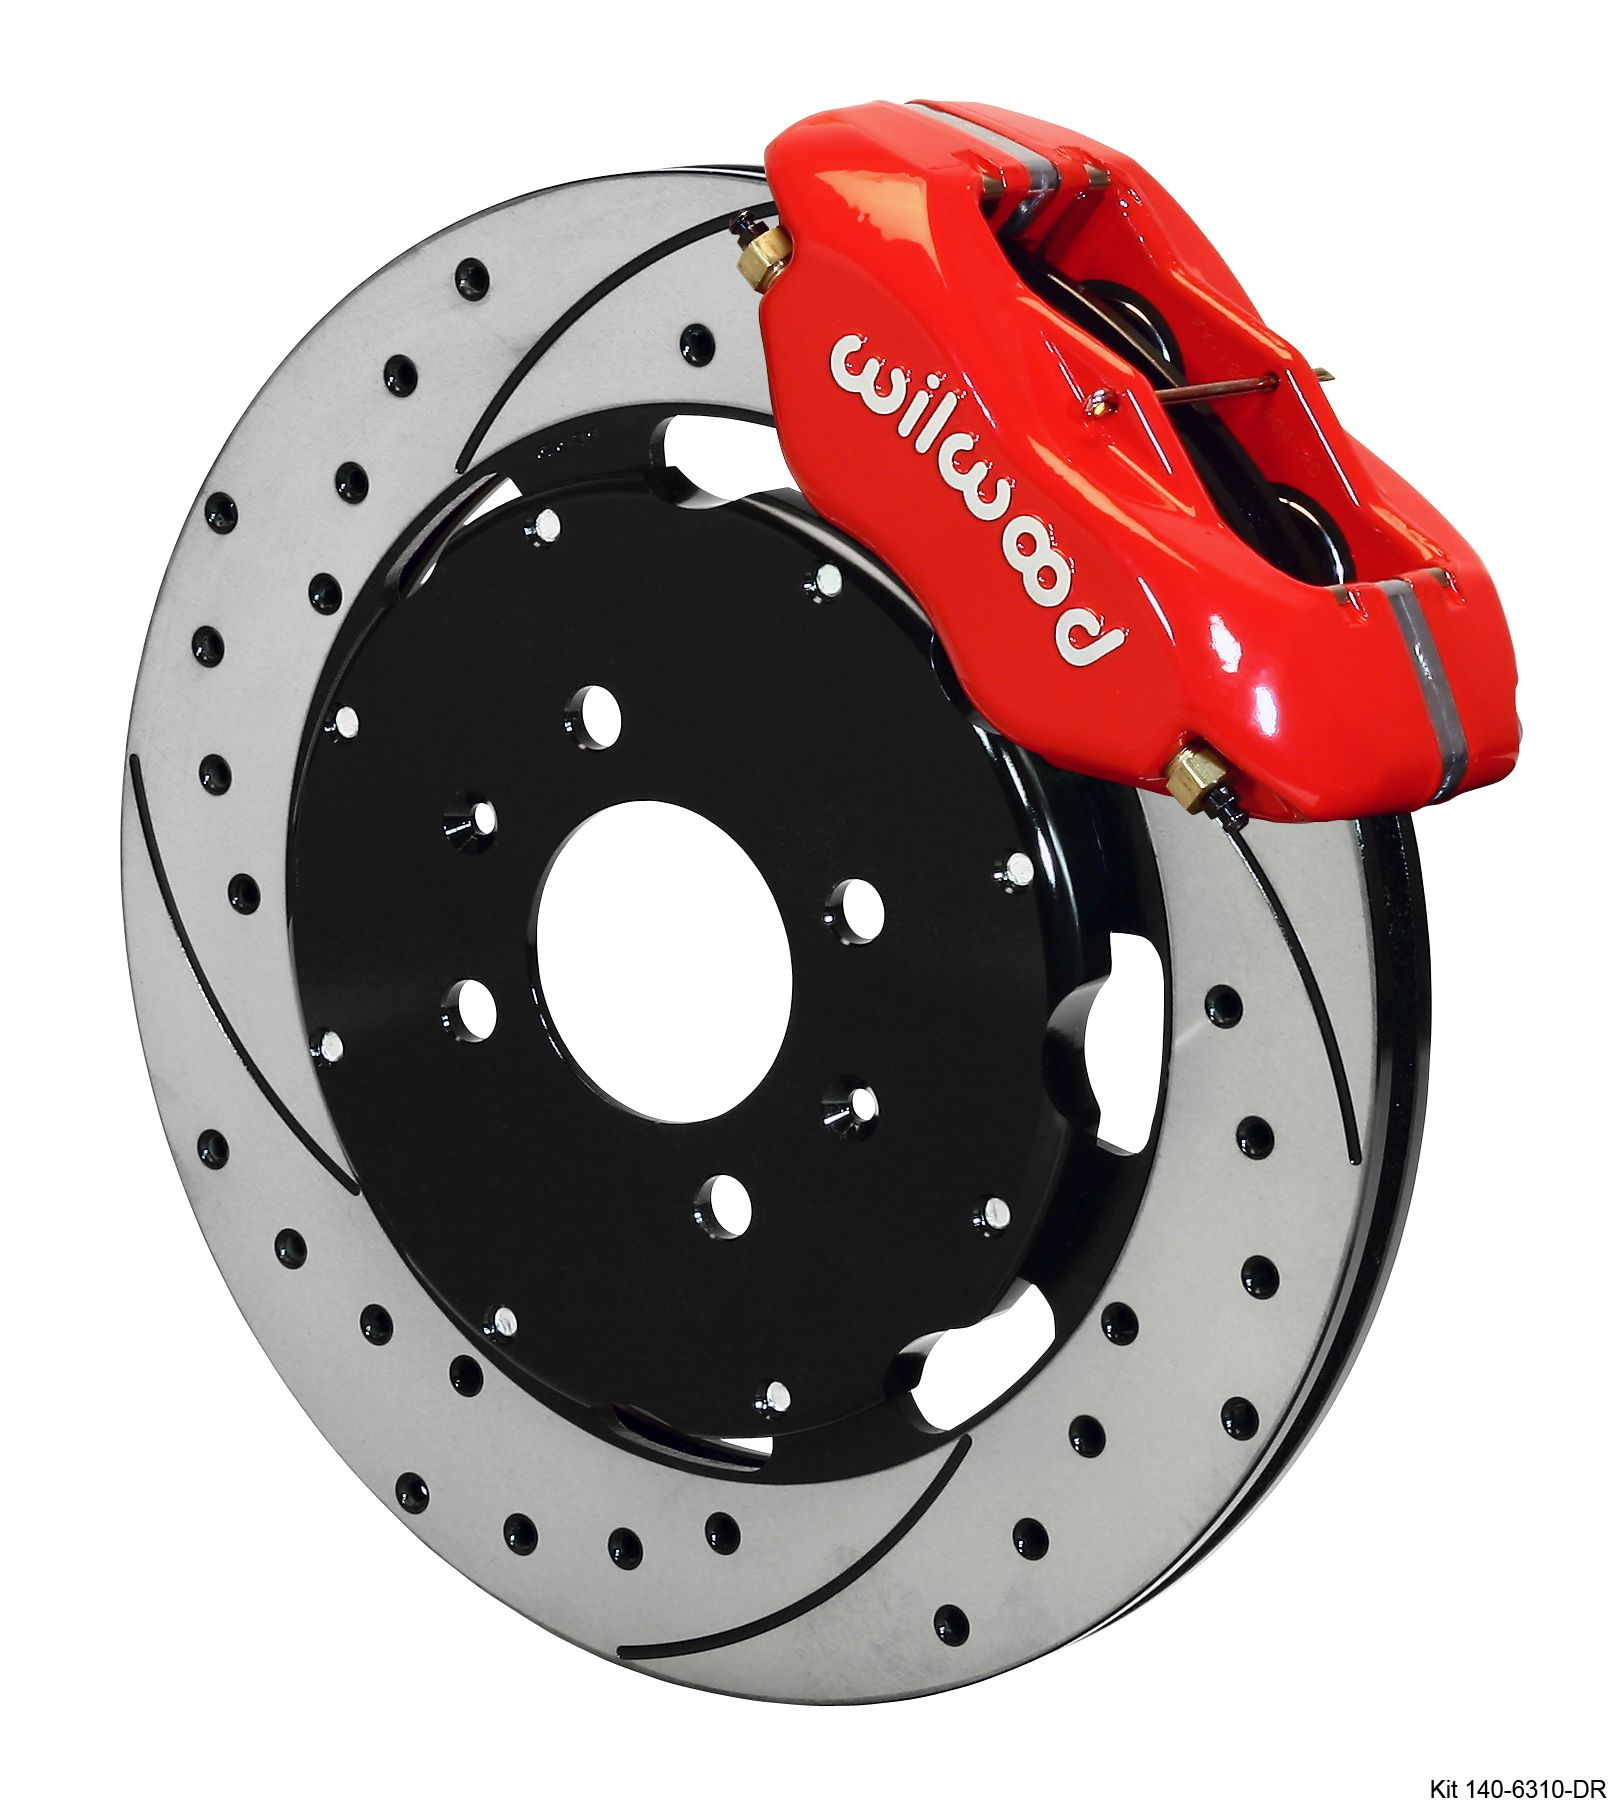 Wilwood's New Bolt-On High Performance Big Brake Kit for the '06 Honda Civic Si